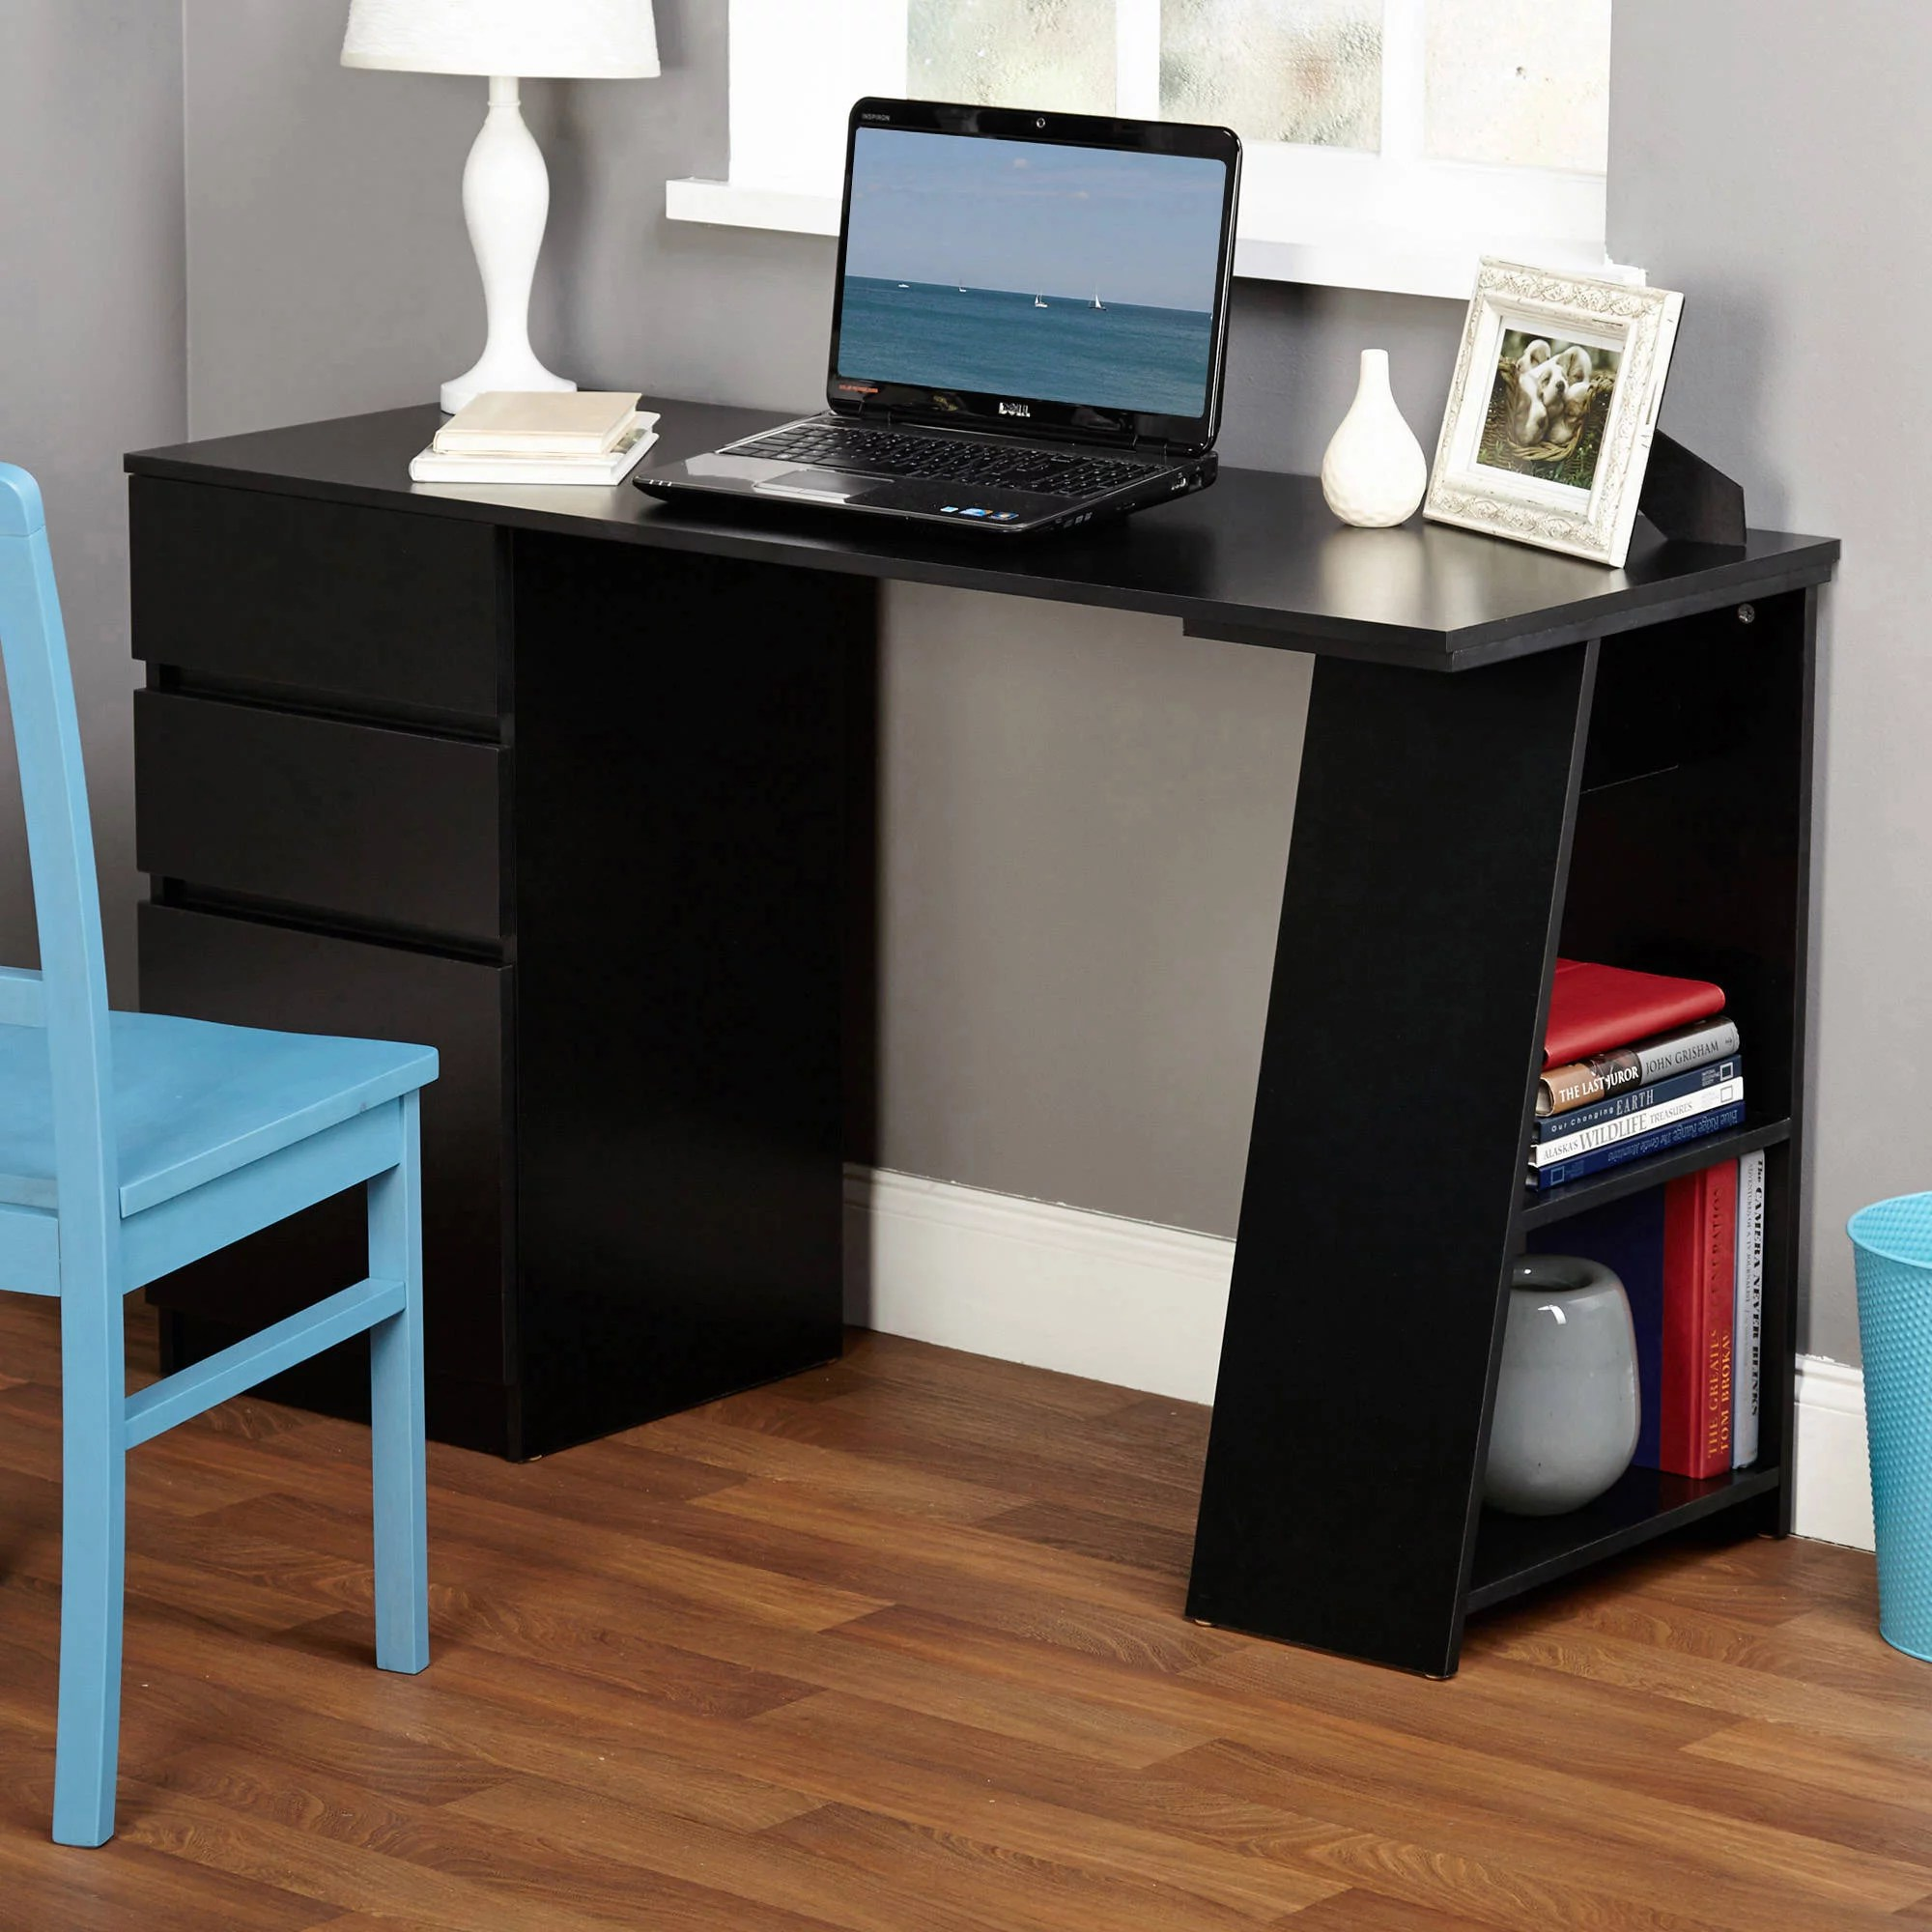 Desks With Drawers Como Writing Desk With 3 Storage Drawers Multiple Colors